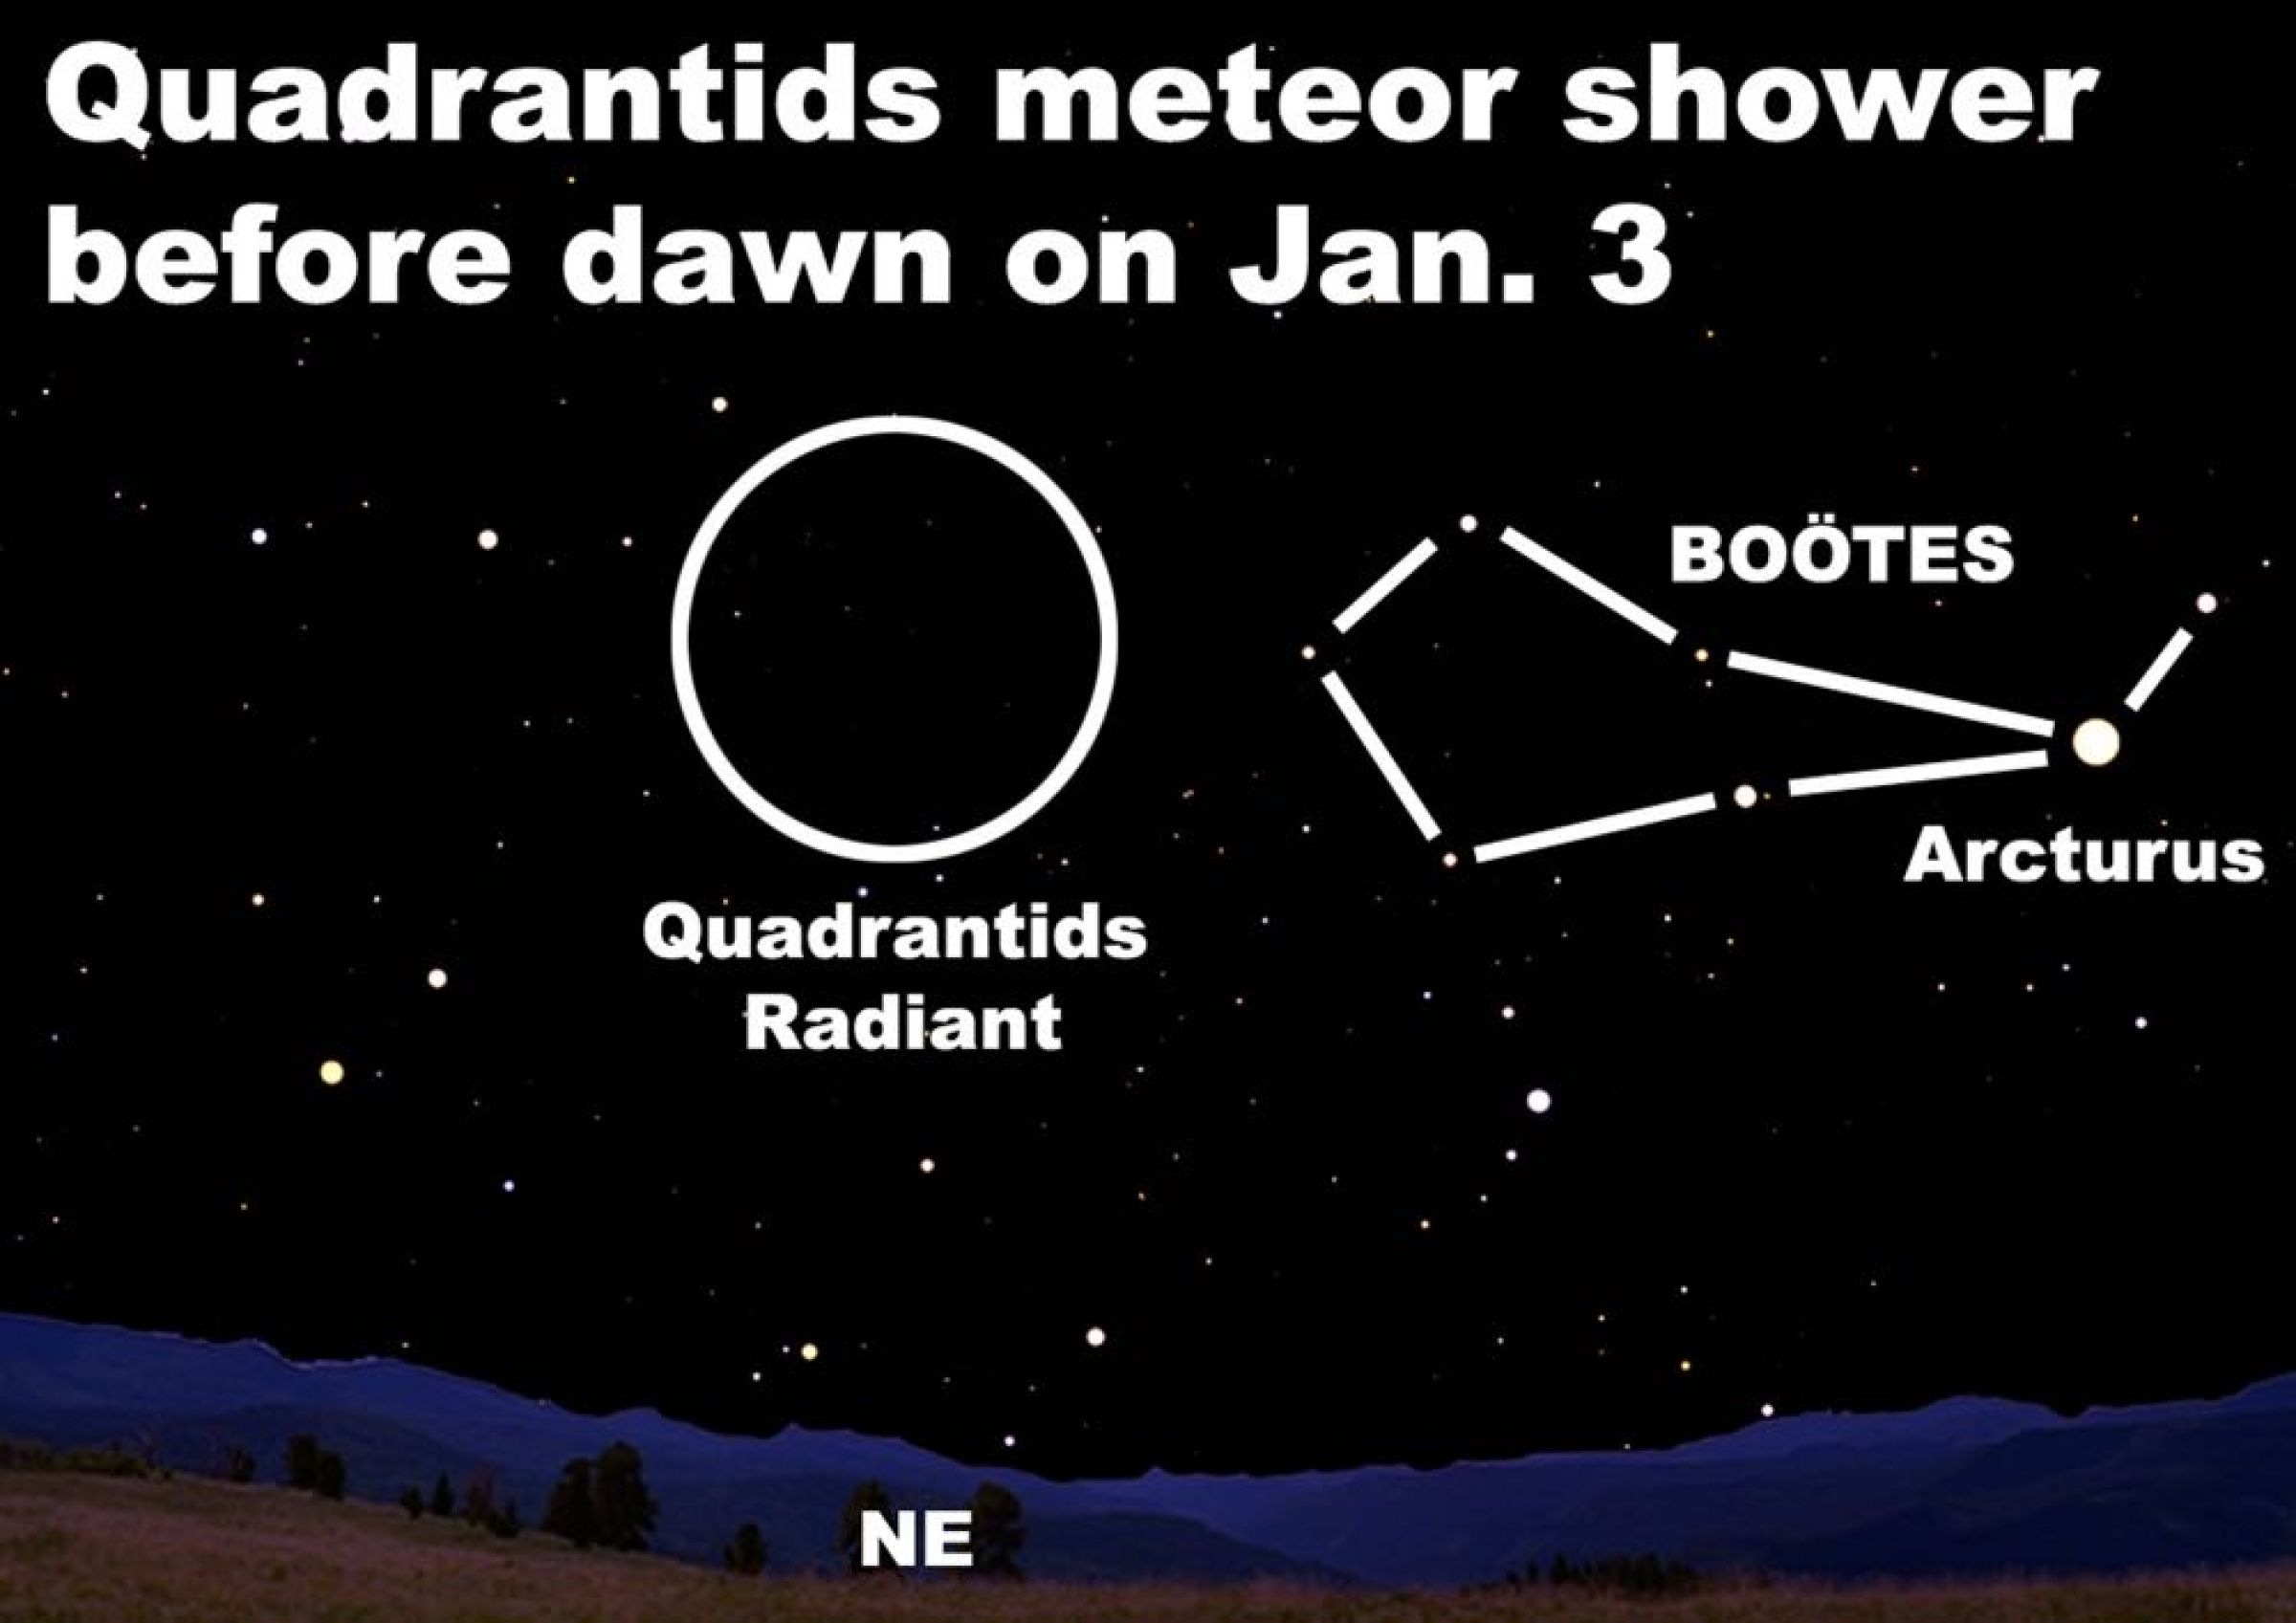 Dennis Mammana Quadrantid Meteor Shower To Launch Banner Year Of Celestial Sights Homes Lifestyle Noozhawk Com